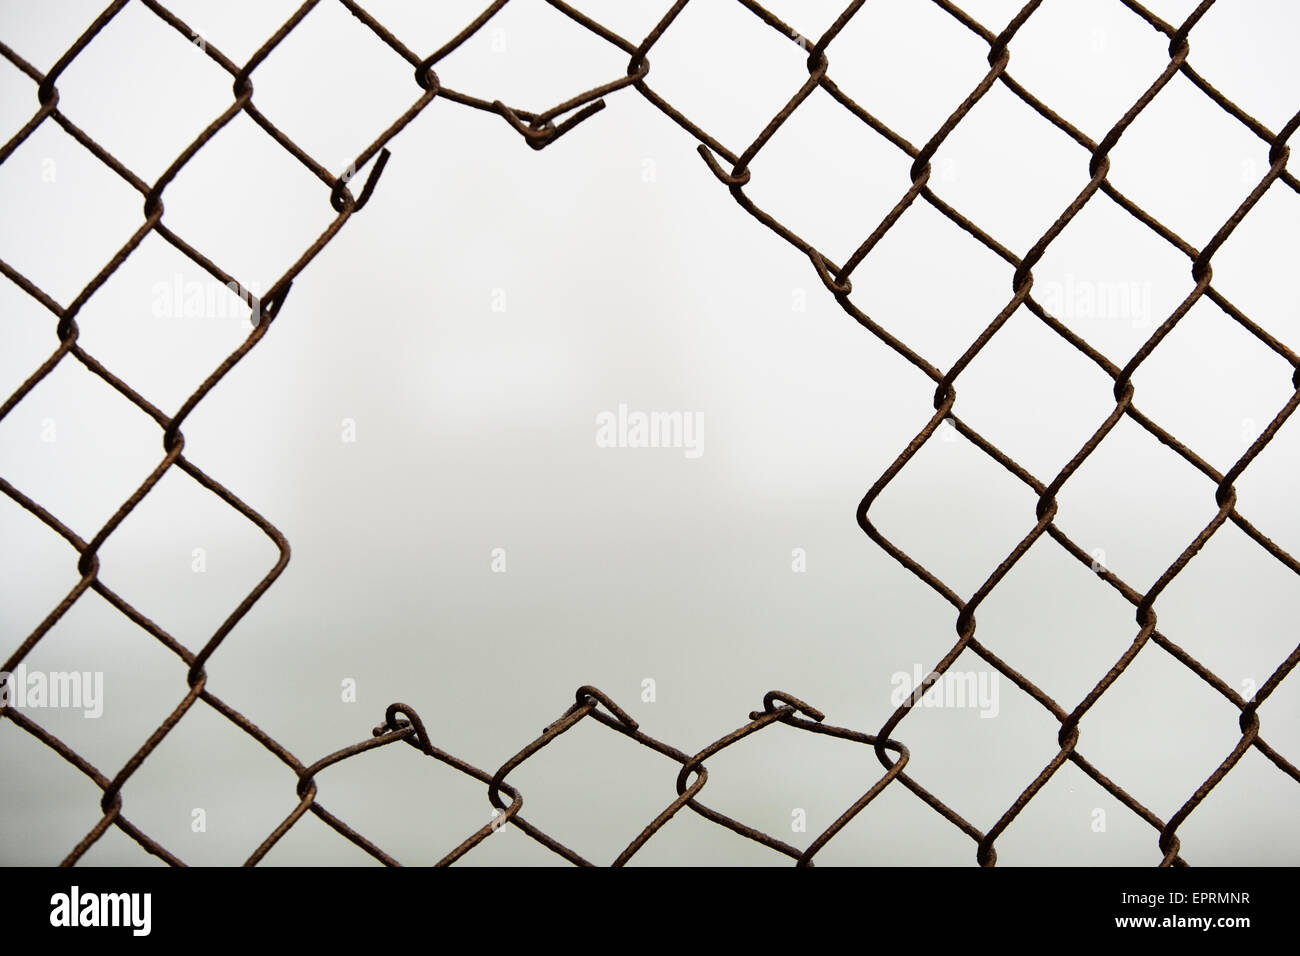 Privacy screen for chain link fence sears - Hole In Chain Link Fence